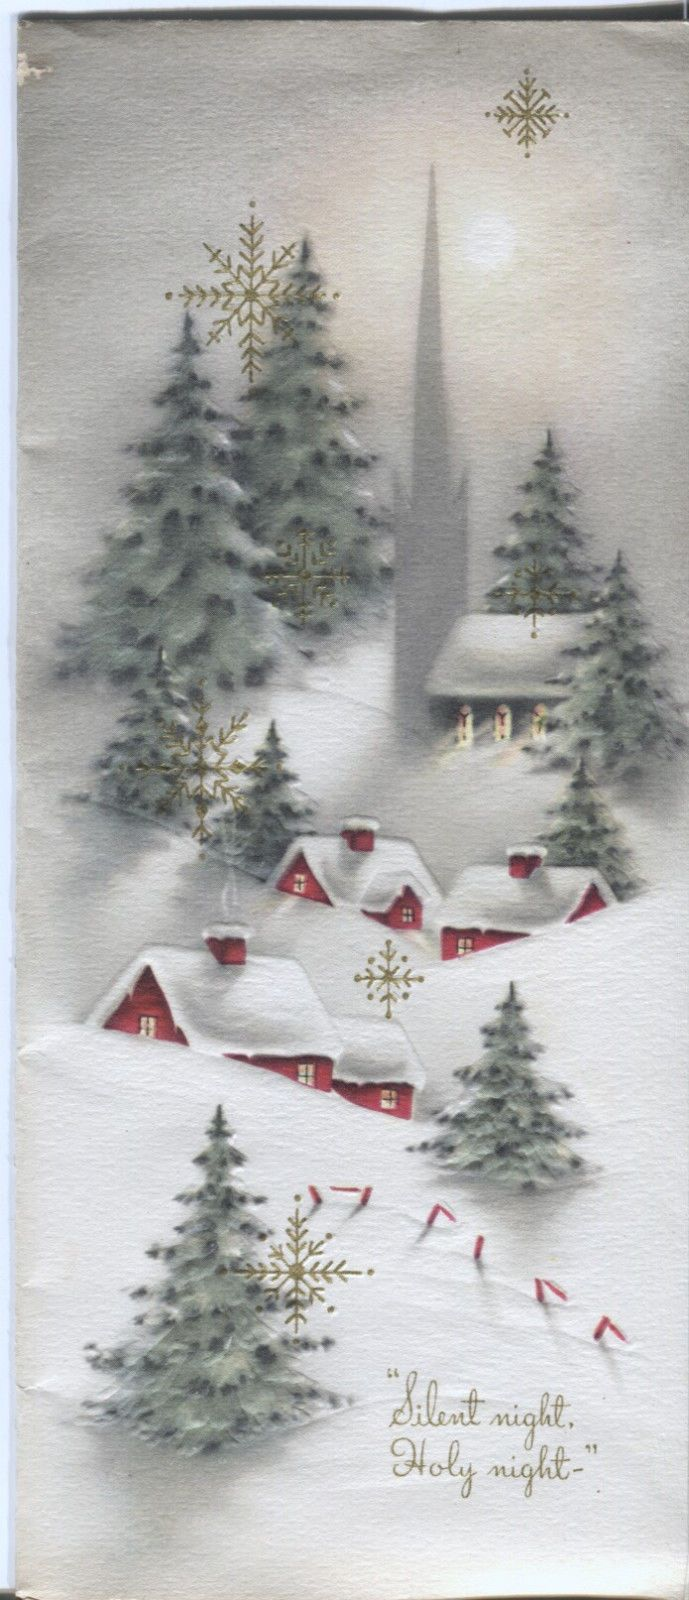 Vintage Christmas Card Snowy Village Scene